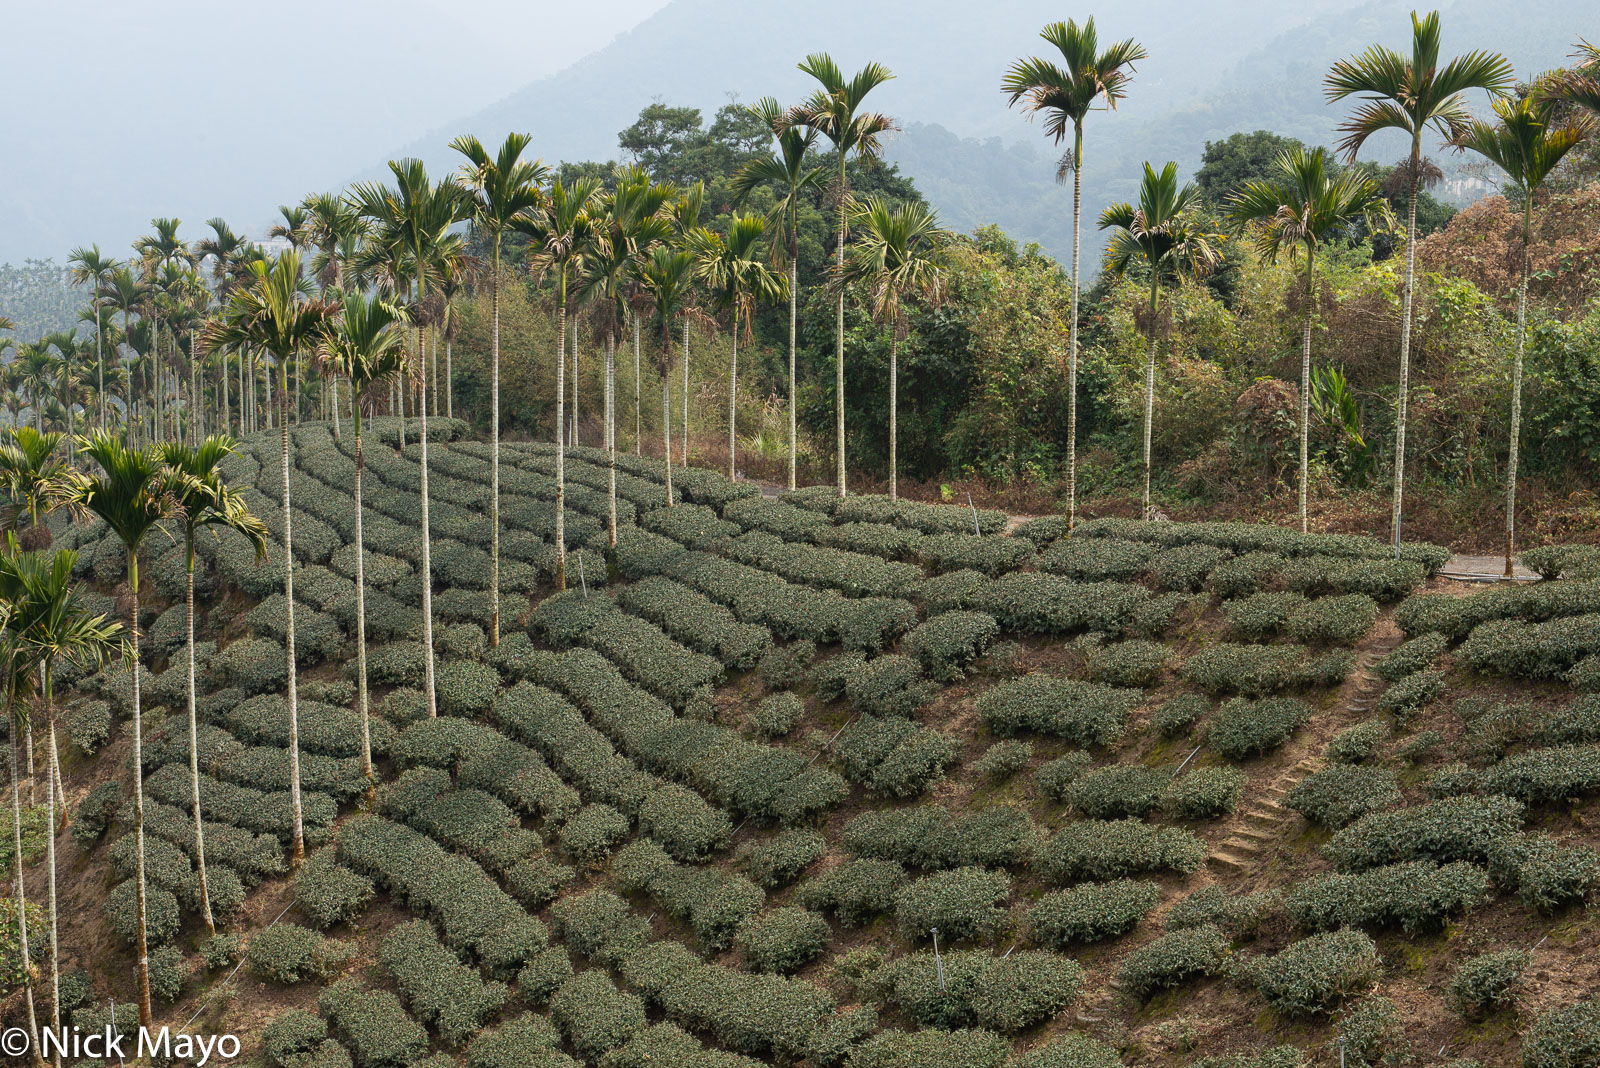 A tea field and betel trees at Liyuanliao in Chiayi County.